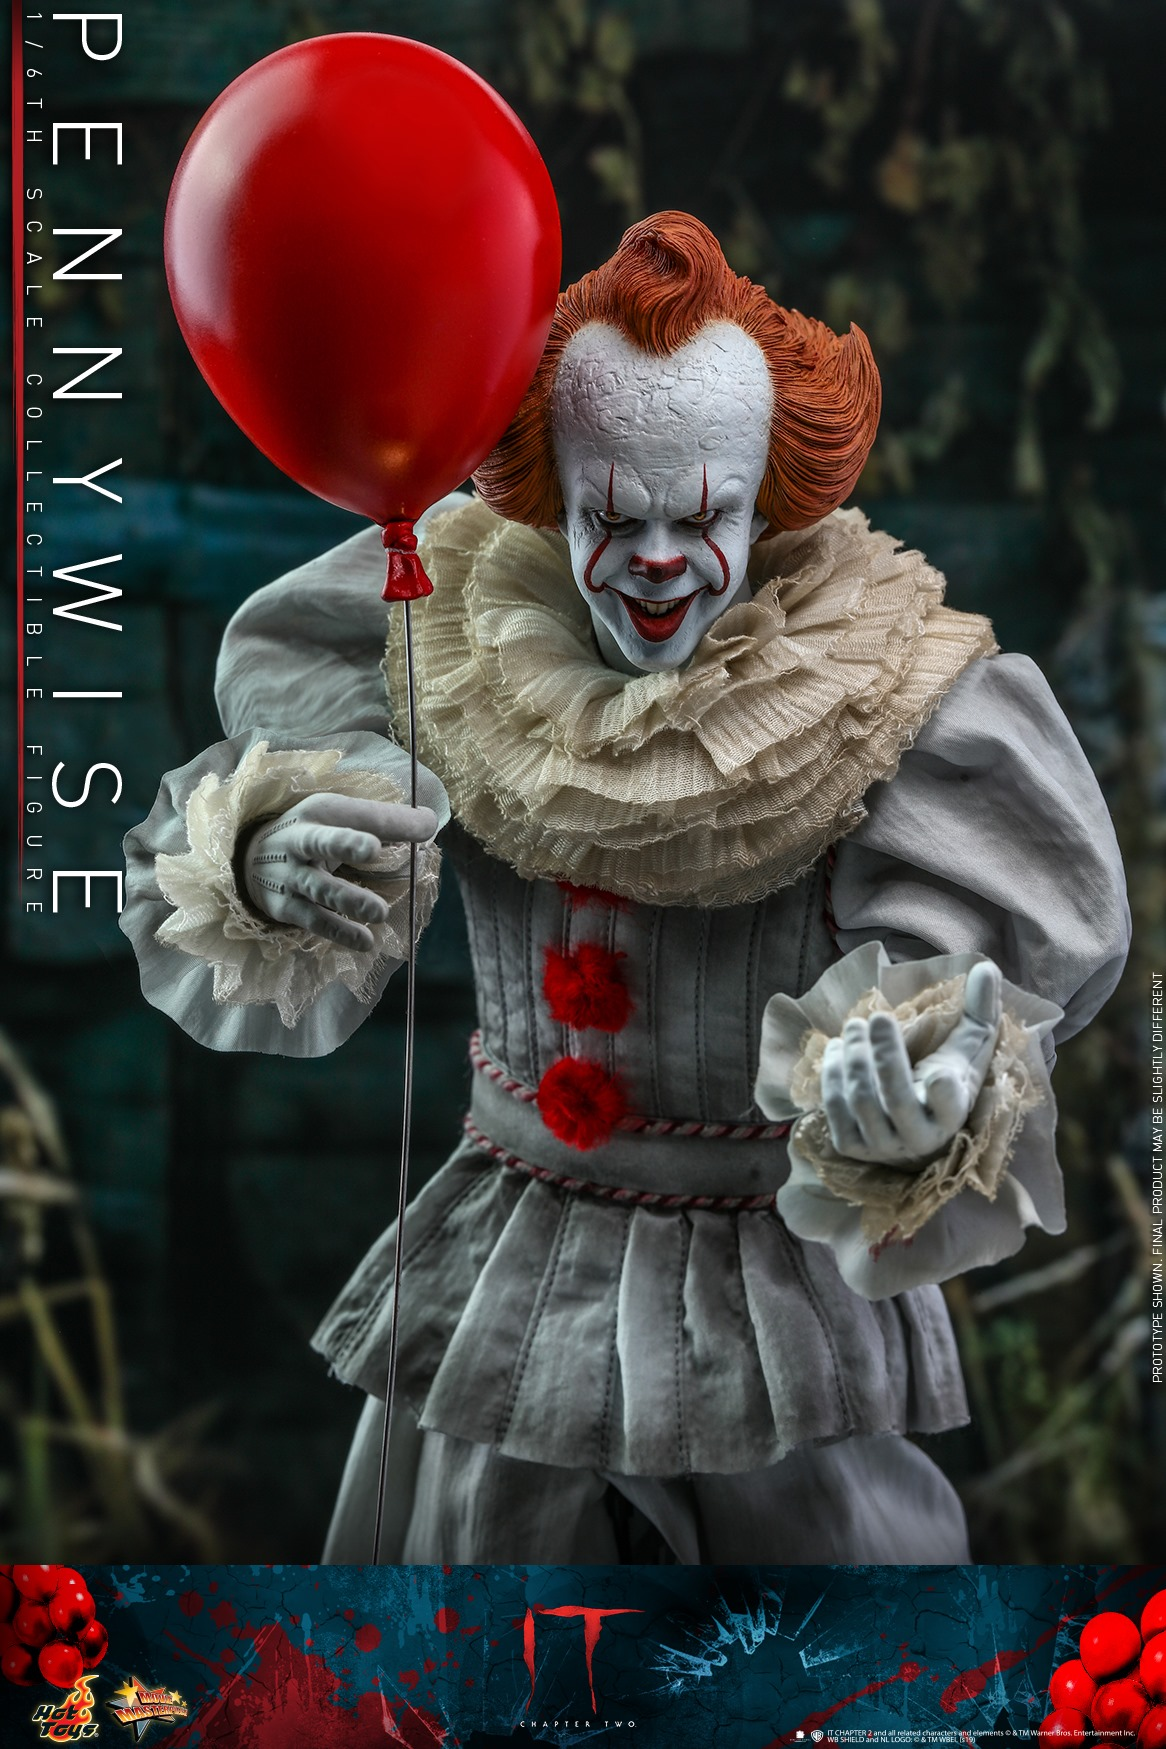 Pre-Order Hot Toys It Chapter 2 Pennywise Sixth Scale Figure